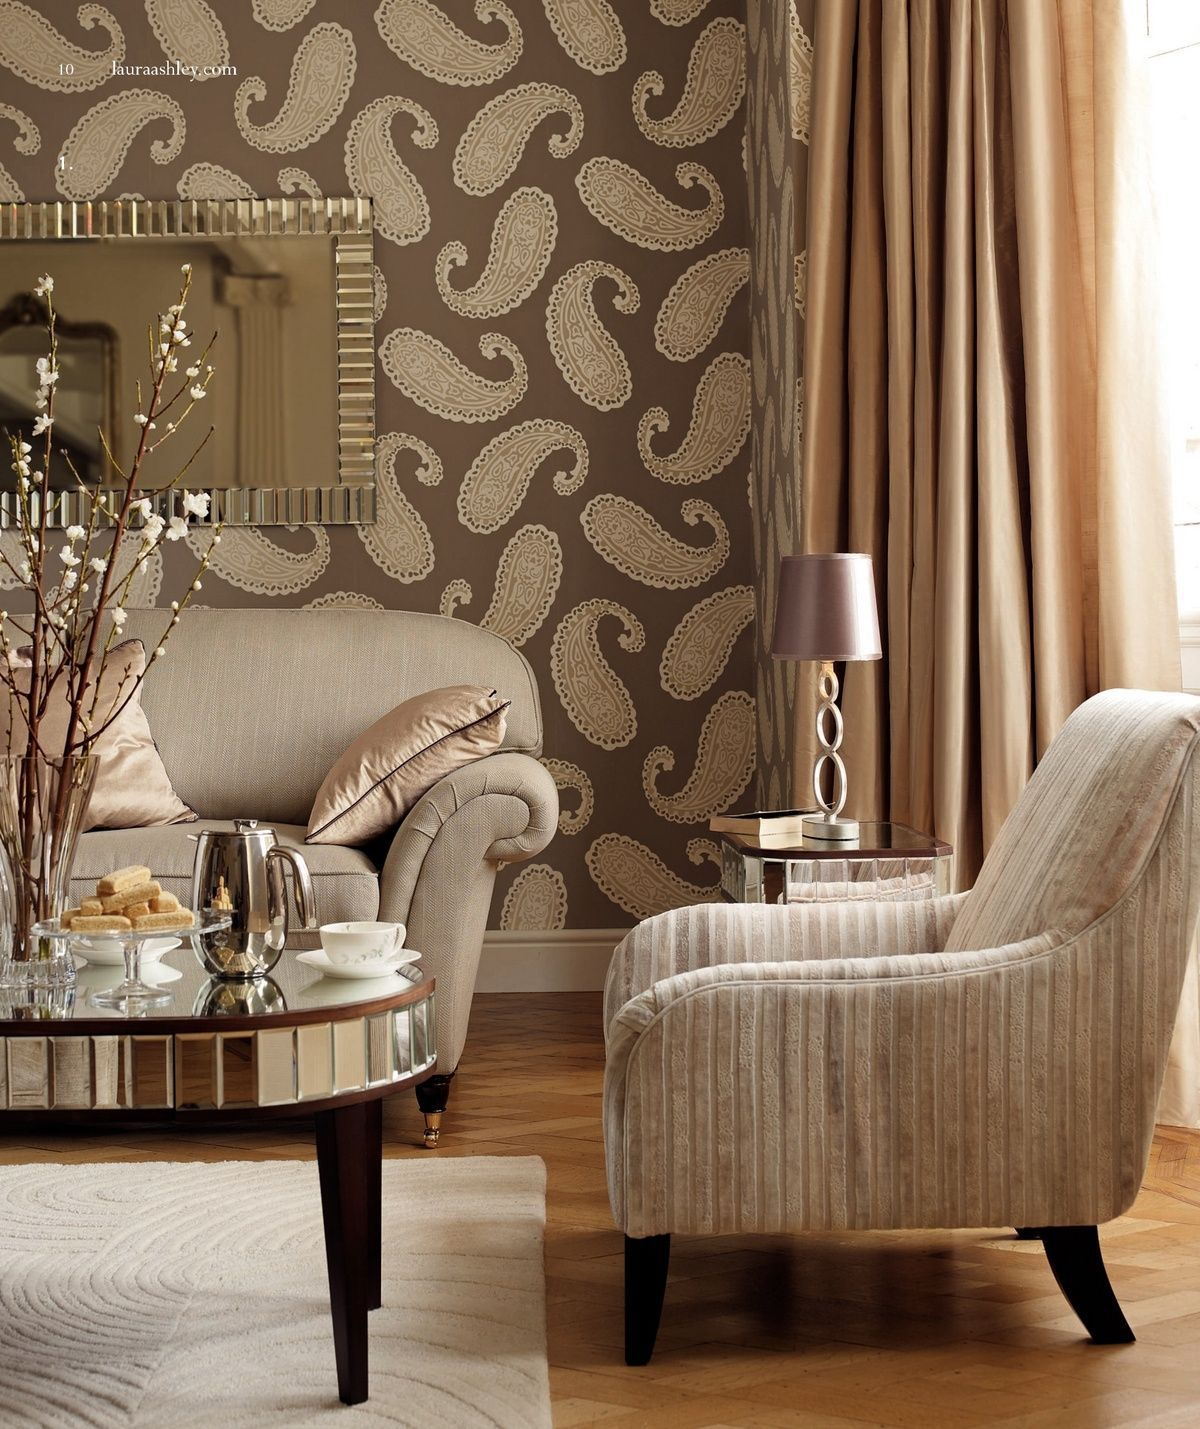 Muebles Laura Ashley - Nice Upholstered And Mirrored Furniture Wallpaper And Drapes [mjhdah]http://www.i-decoracion.com/Uploads/i-decoracion.com/ImagenesGrandes/muebles-para-una-cocina-inglesa.jpg